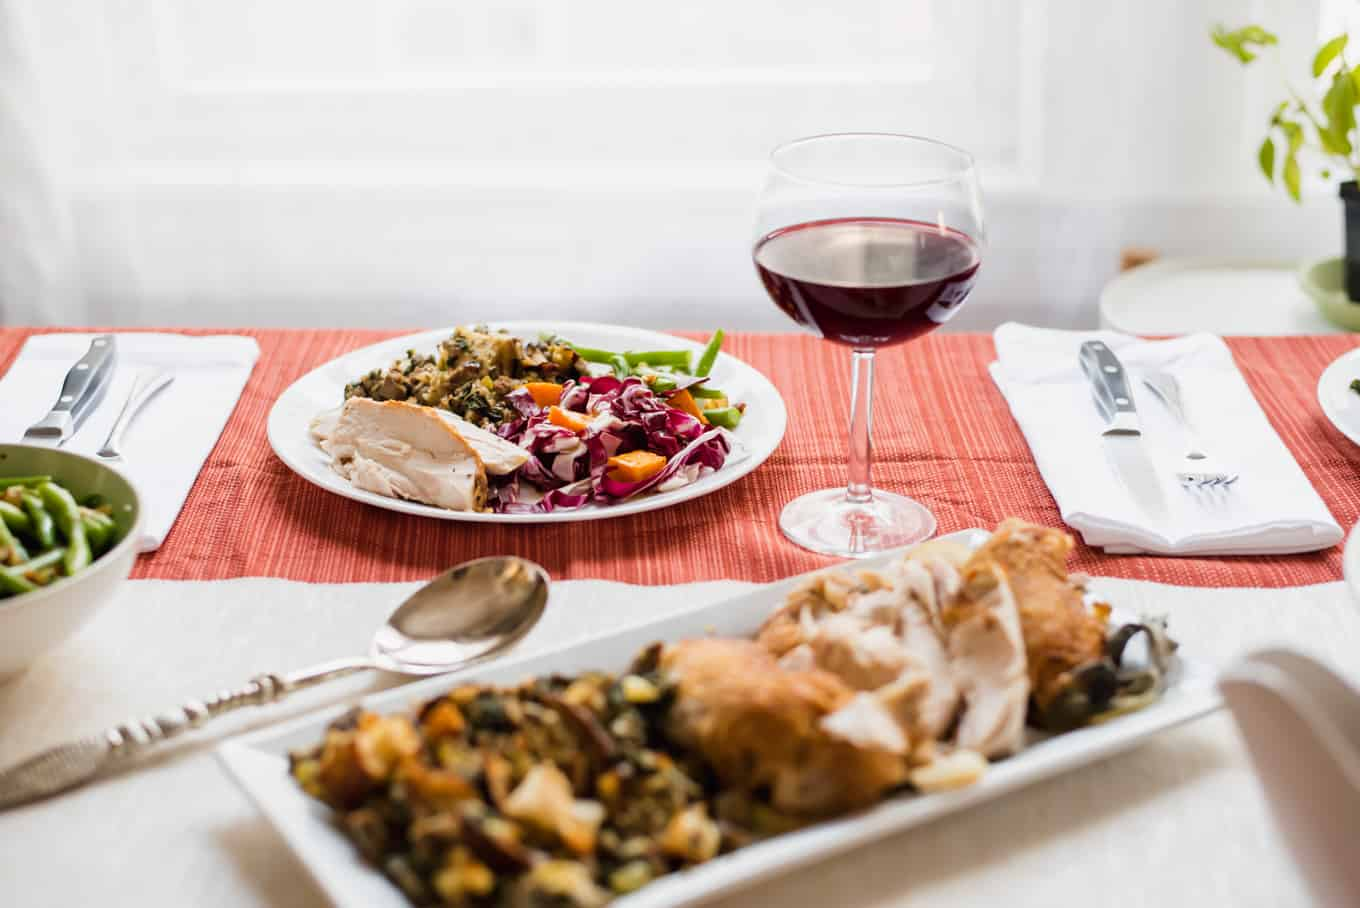 Julia Turshen's Radicchio + Roasted Squash Salad & Hosting a Stress-Free Thanksgiving | omgfood.com